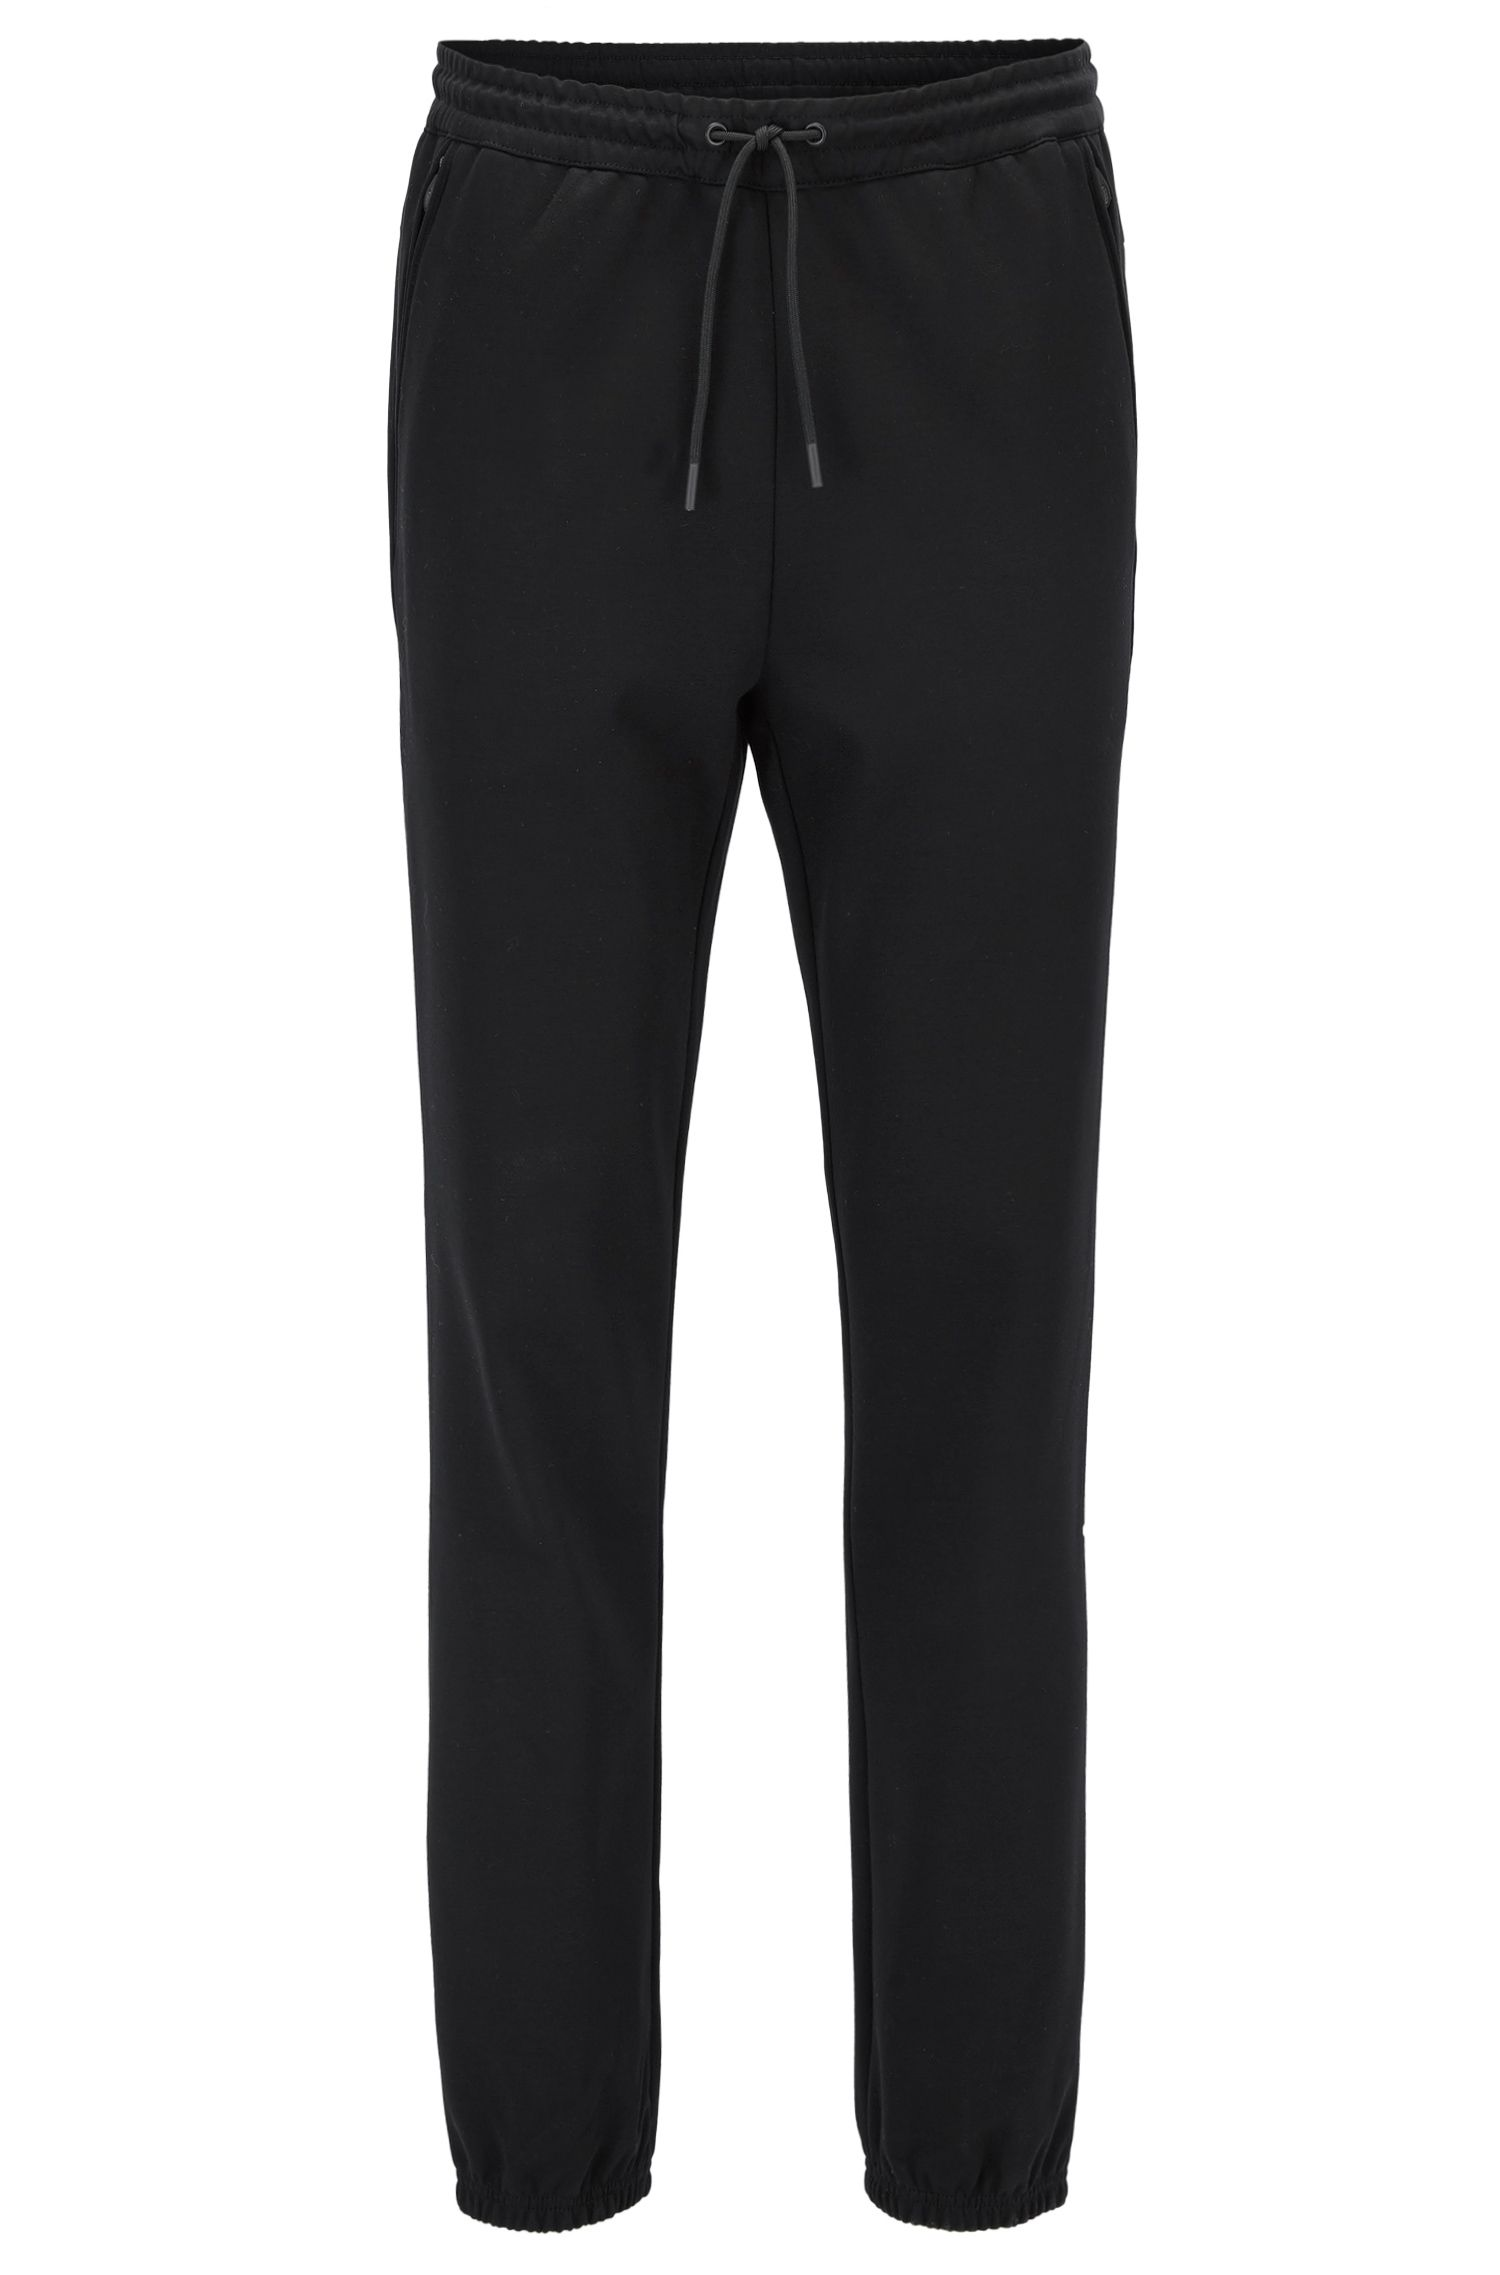 Pantaloni slim fit in misto cotone idrorepellente